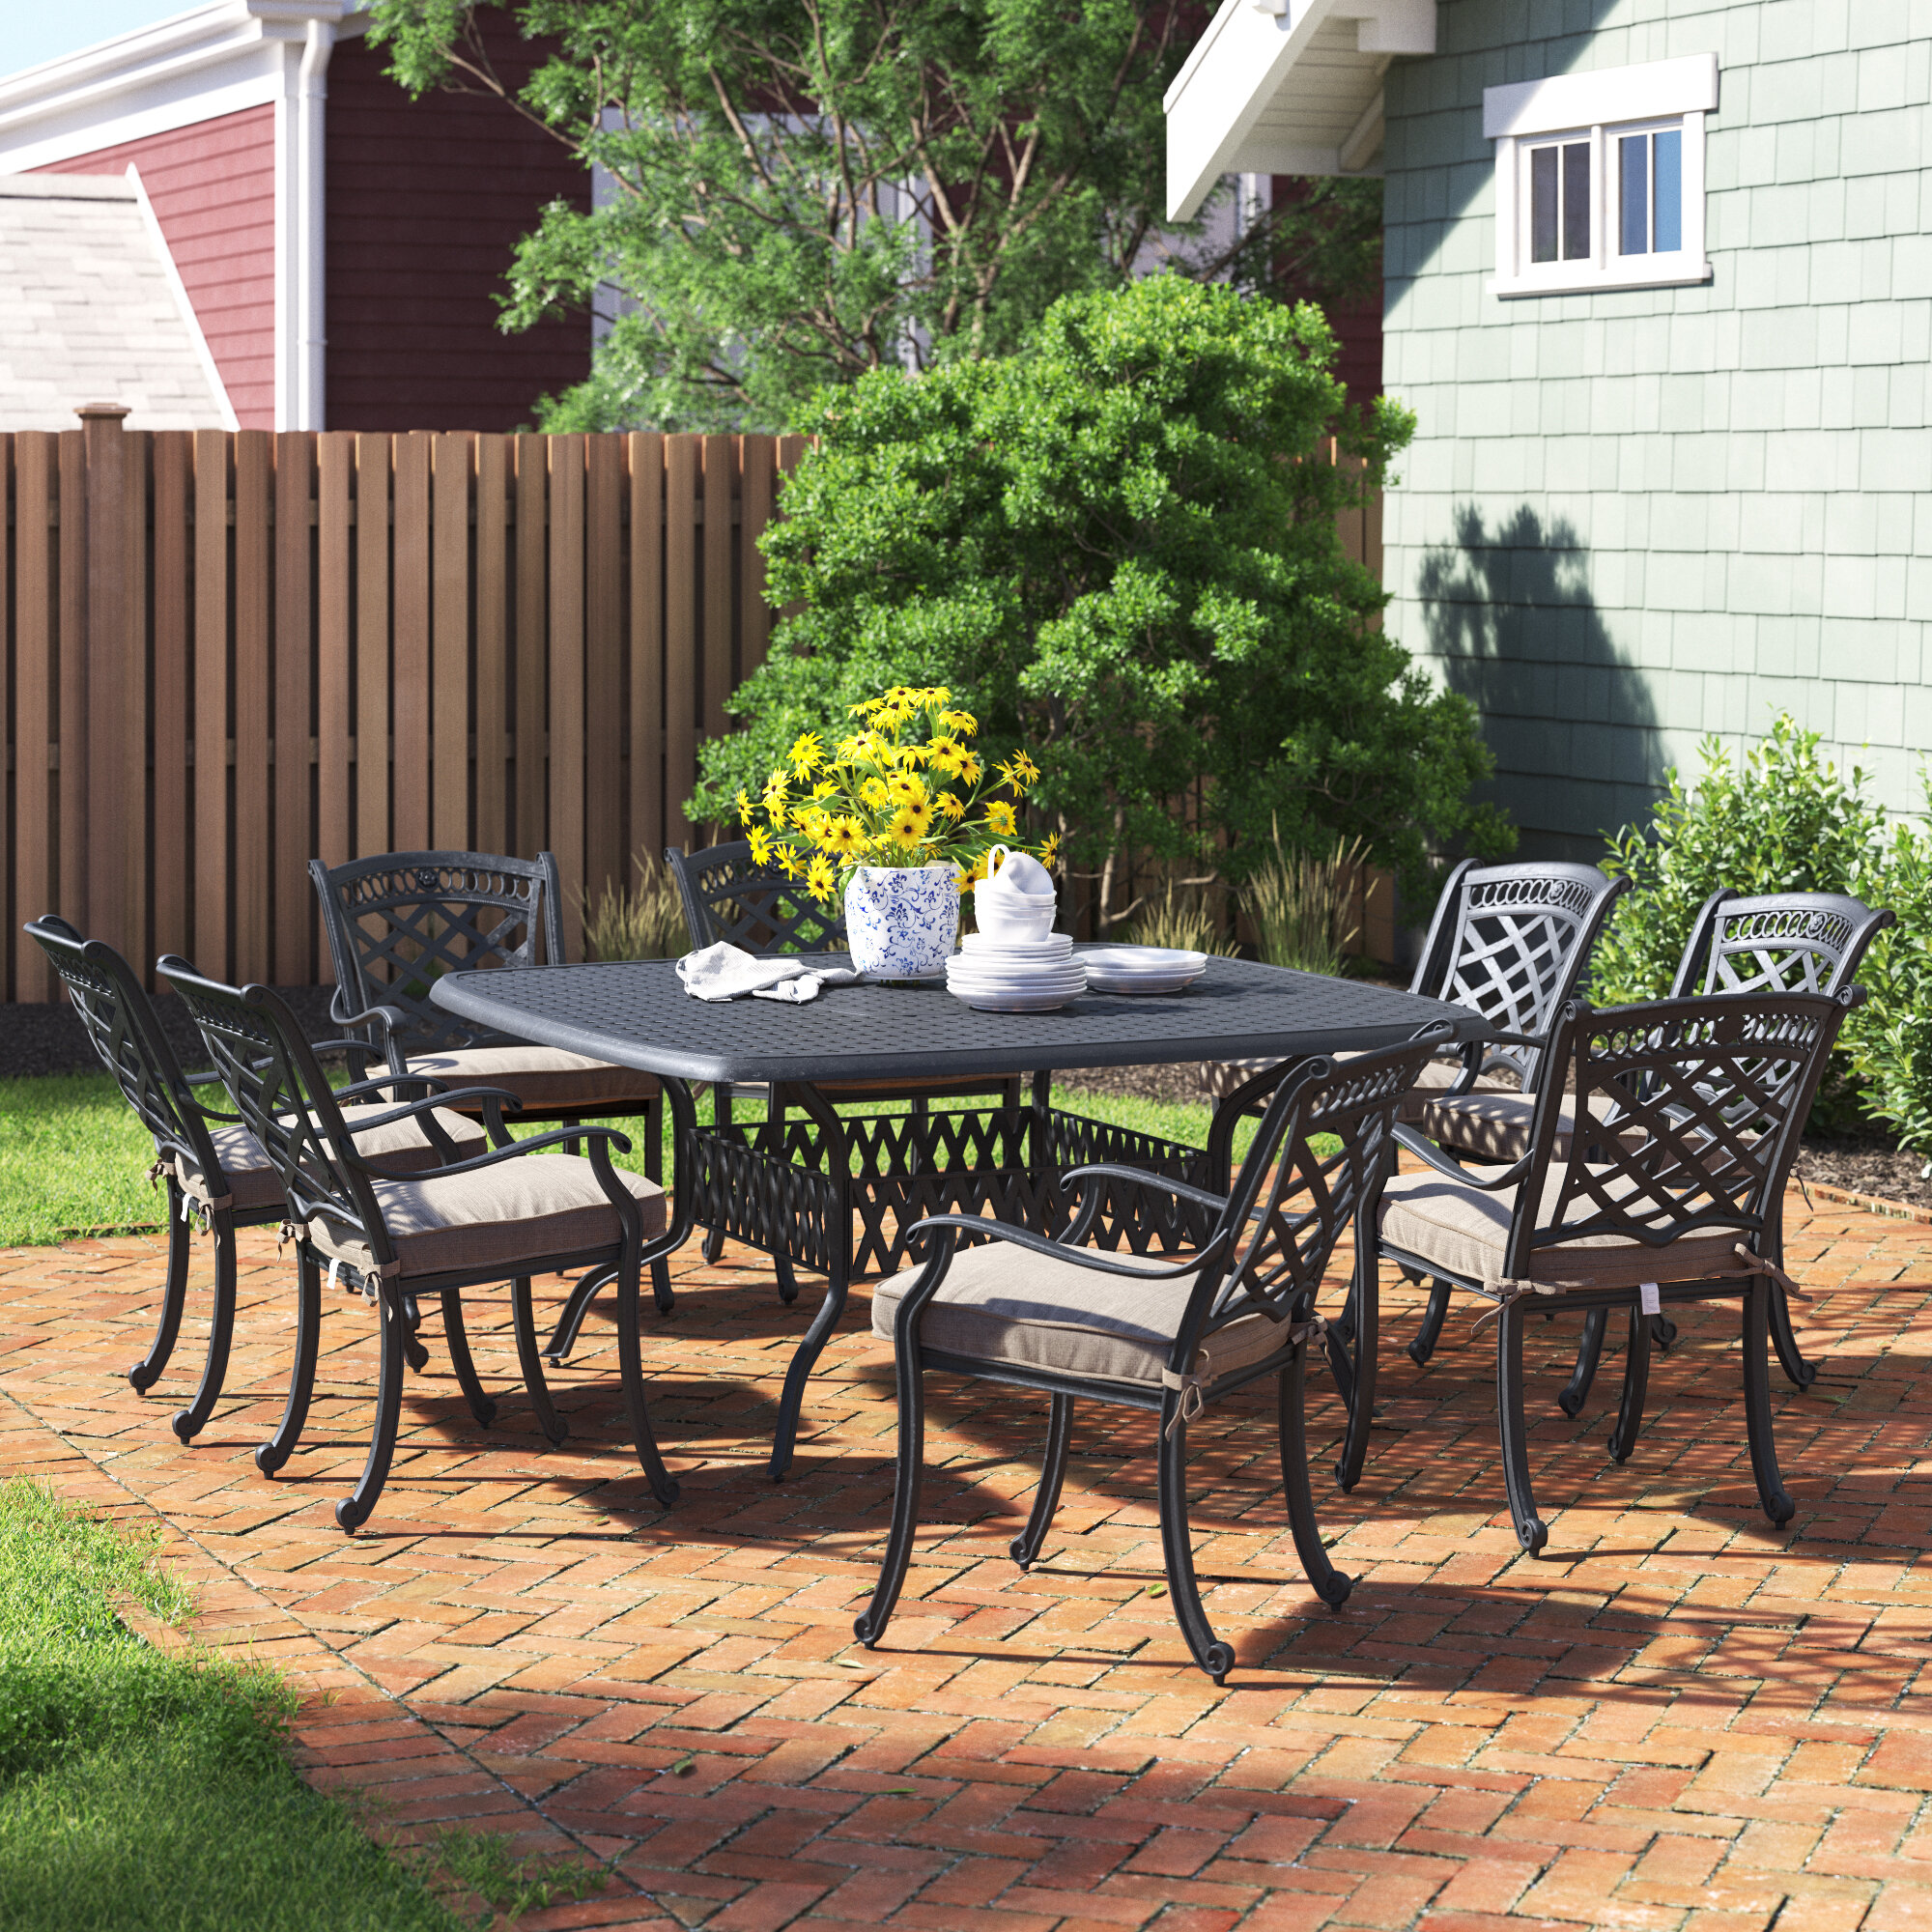 wildermuth square 8 person 64 long dining set with cushions